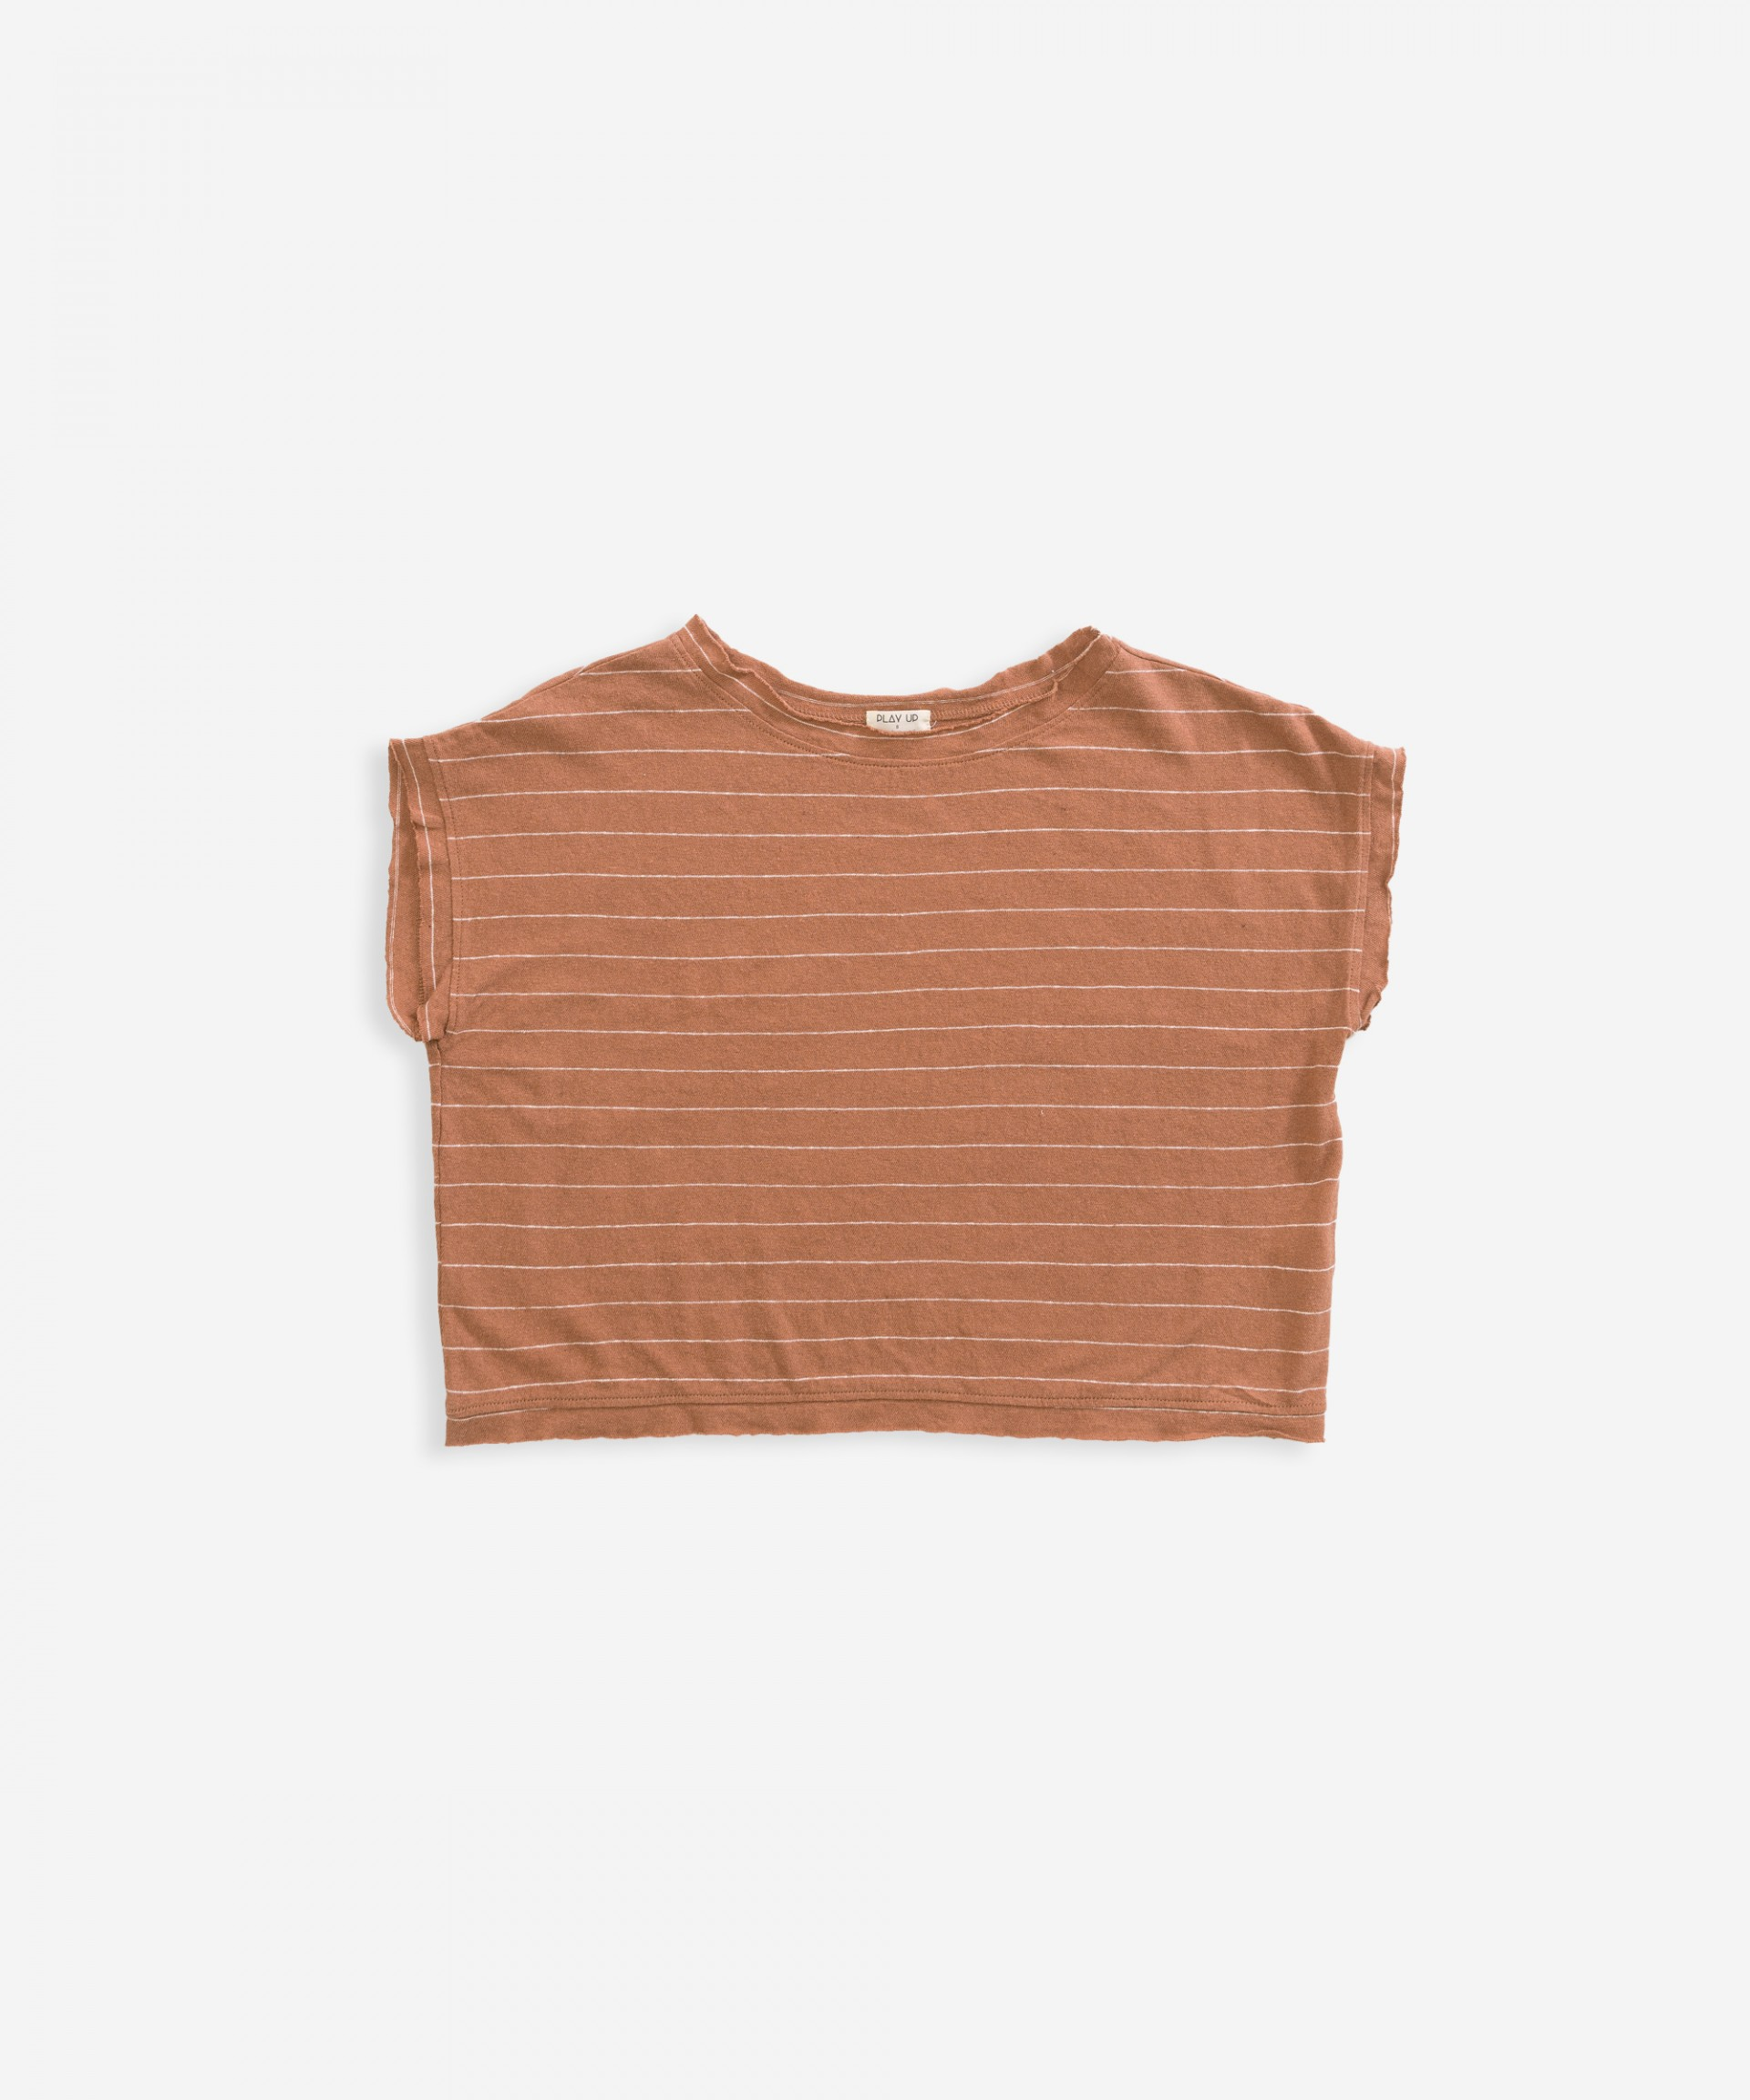 T-shirt in cotton-linen | Weaving